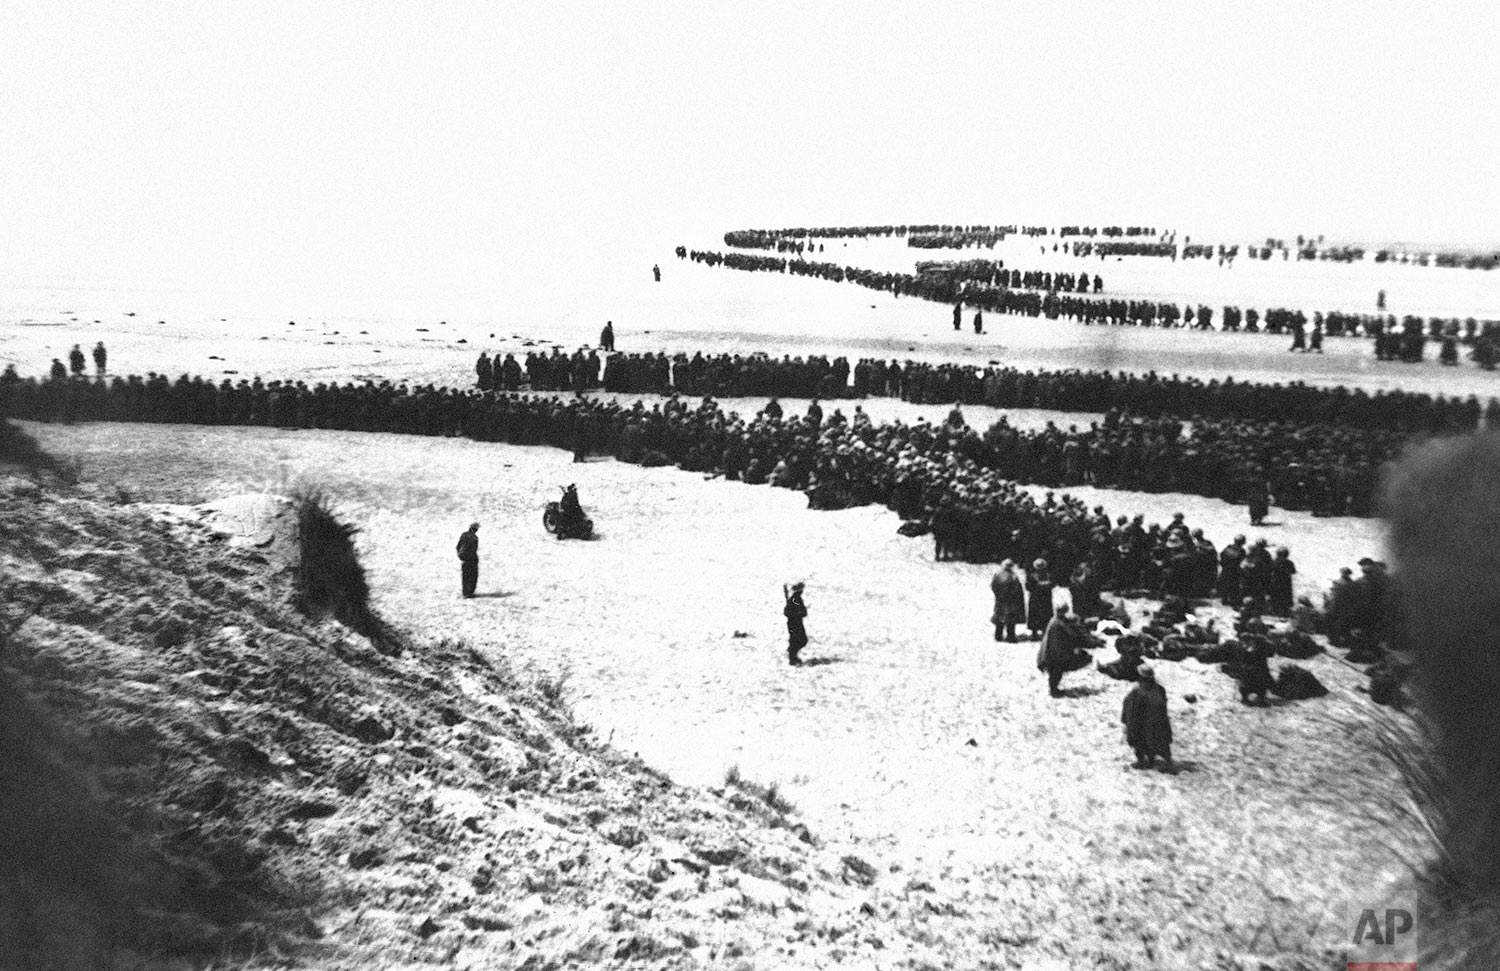 Thousands of British and French troops massed on the beach of Channel port in Dunkirk, France on June 4, 1940 awaiting ships to return them to England. (AP Photo)